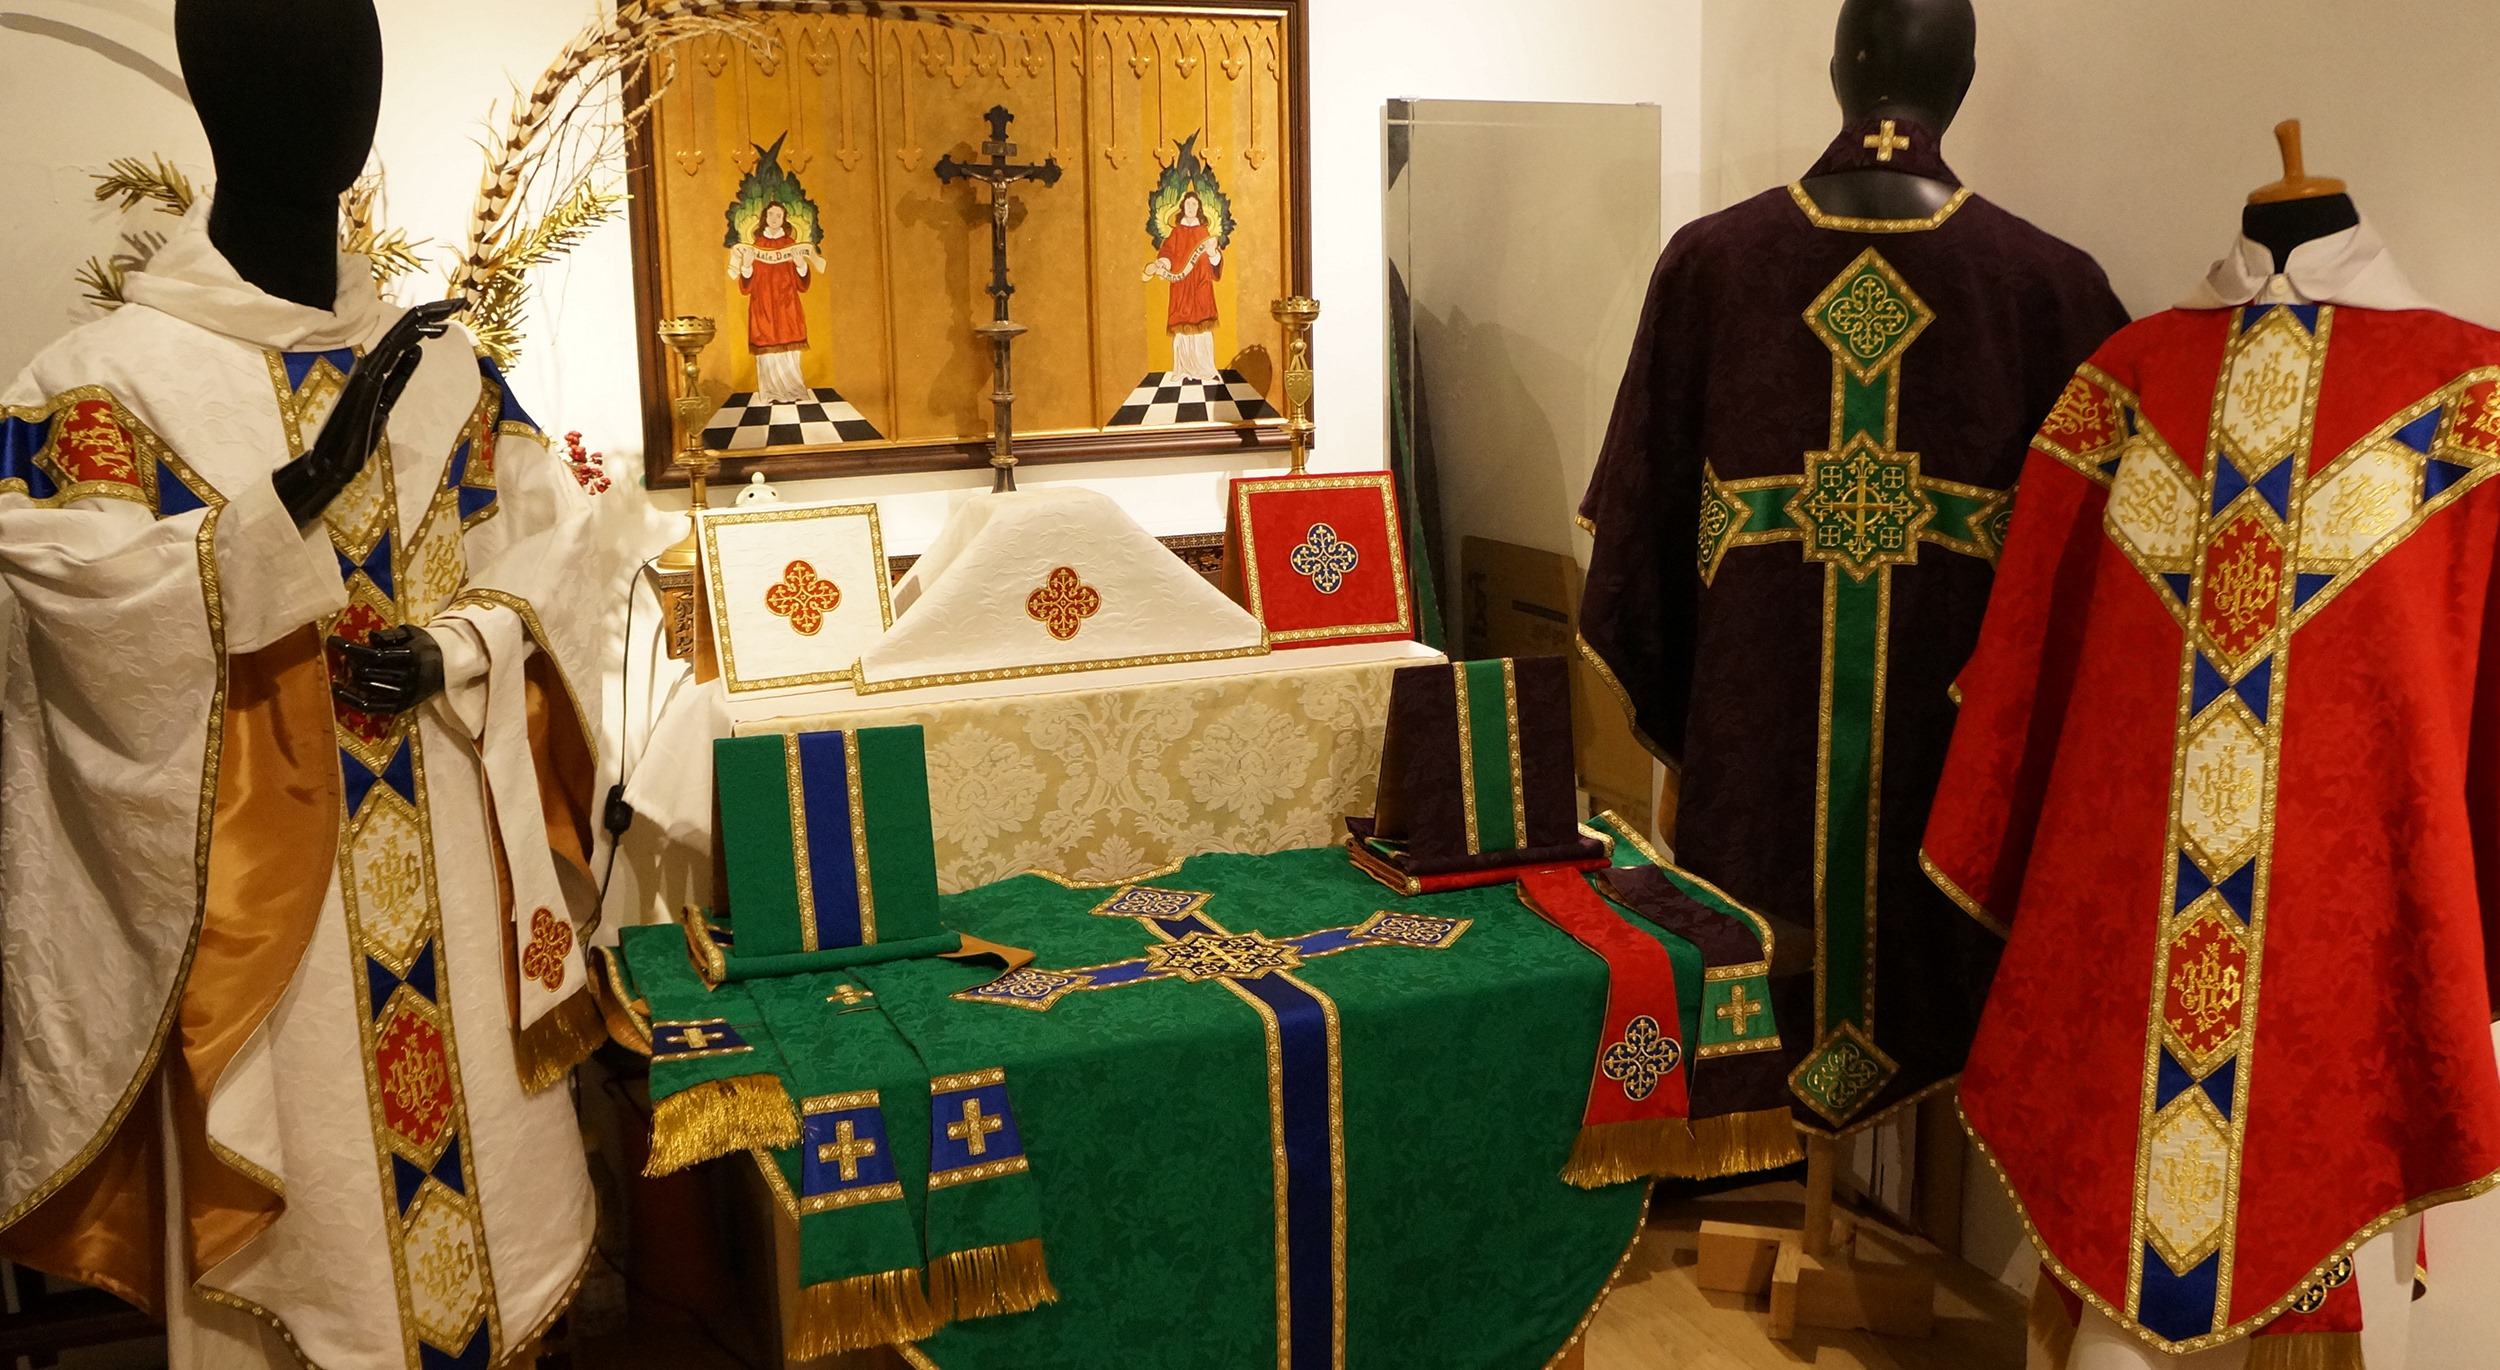 A 28-year-old Anglican from Malaysia makes Catholic vestments for the world